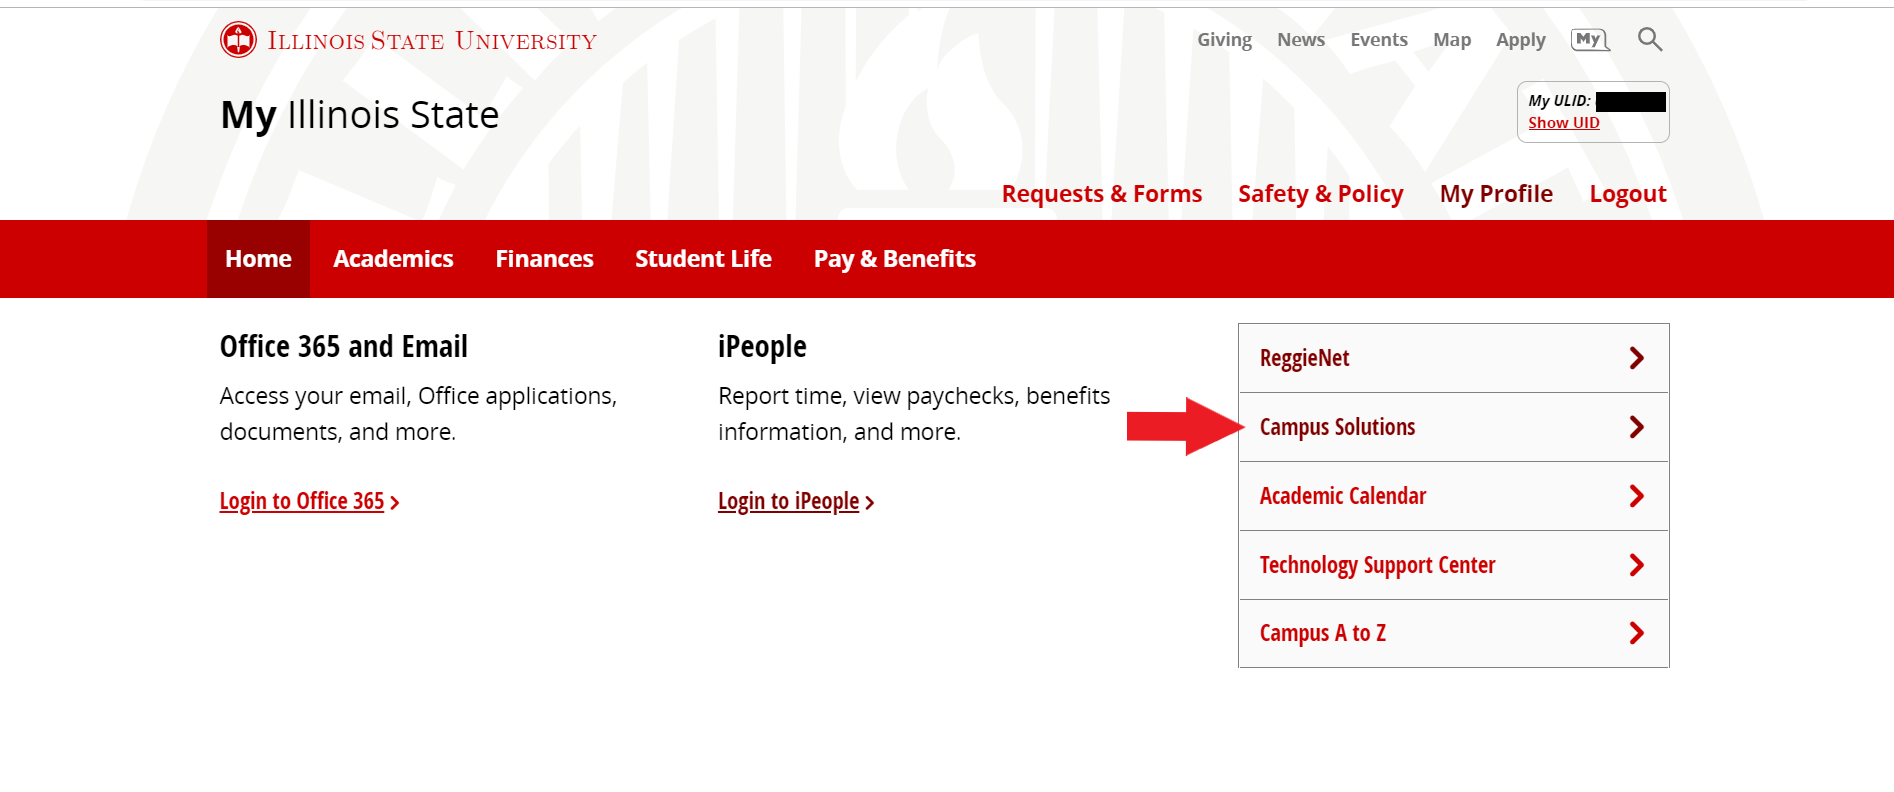 How To Update Your Personal Contact Information | It Help With Regard To Illinois State University Academic Calendar